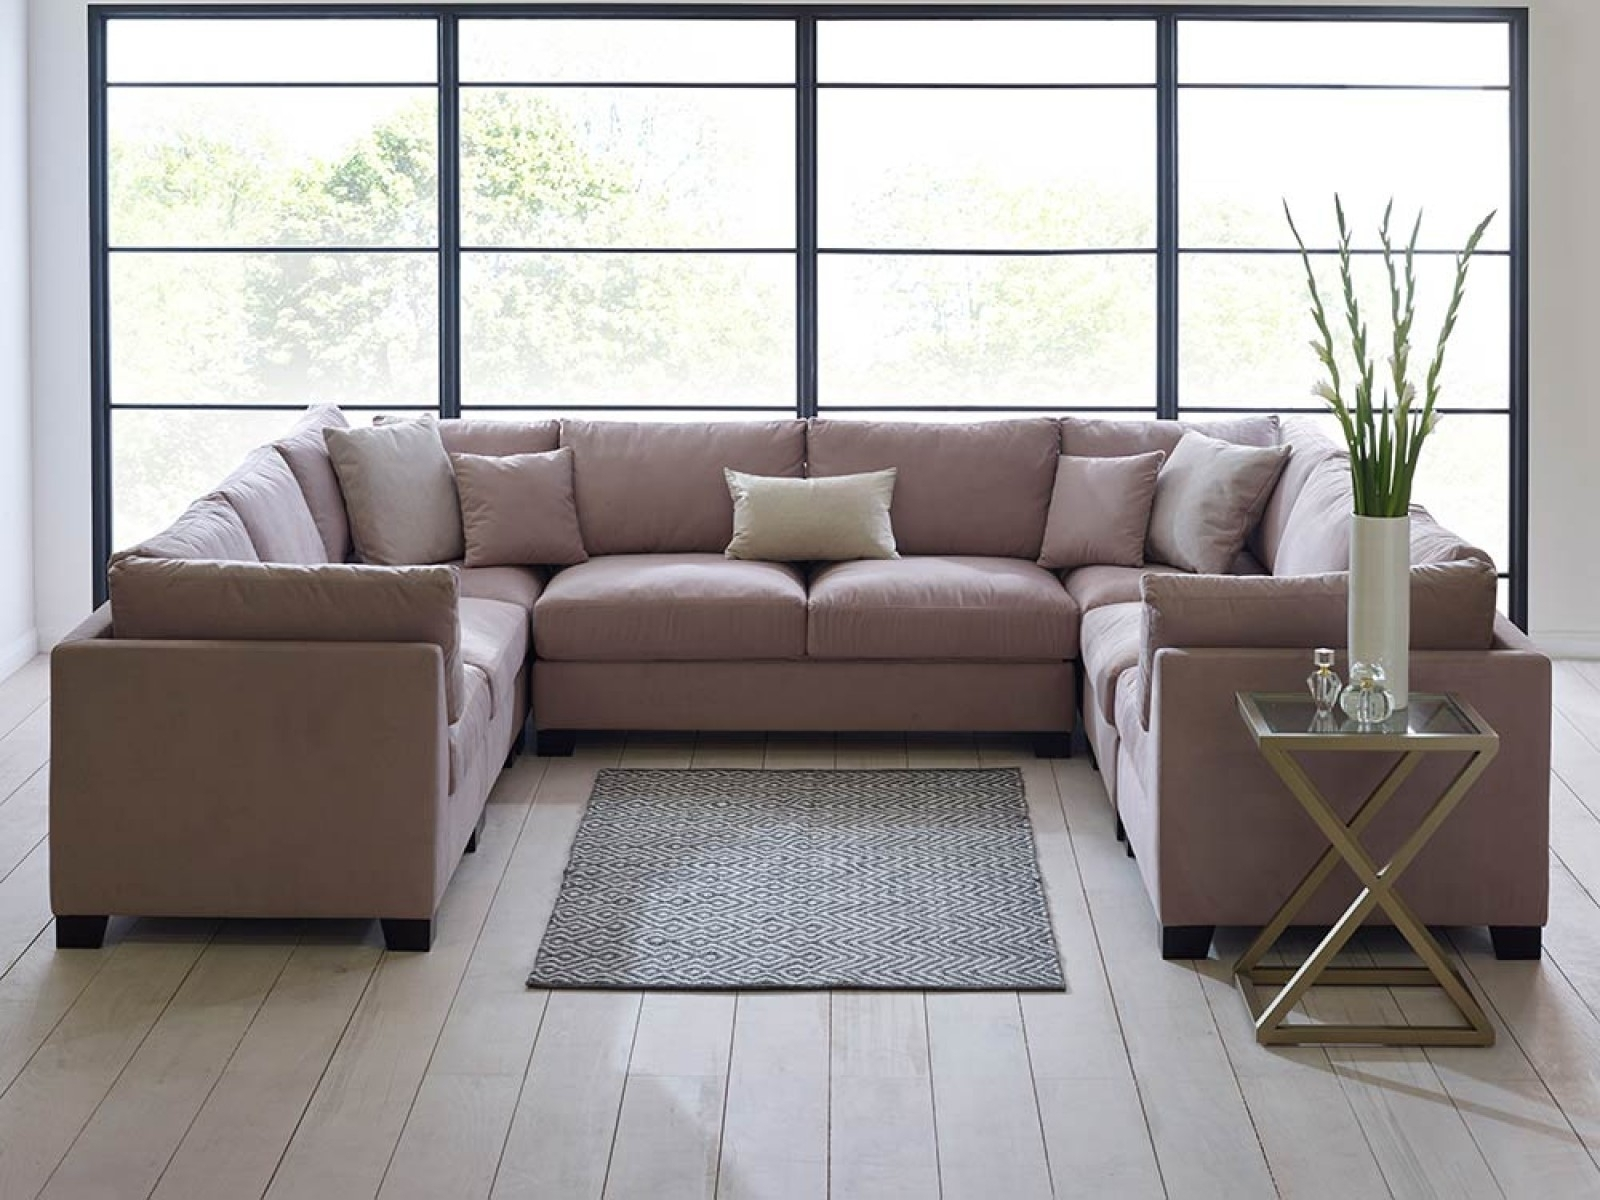 Popular Sofa : Extra Large Sectional Sofas U Shaped Sofa Design Inside Large U Shaped Sectionals (View 11 of 15)